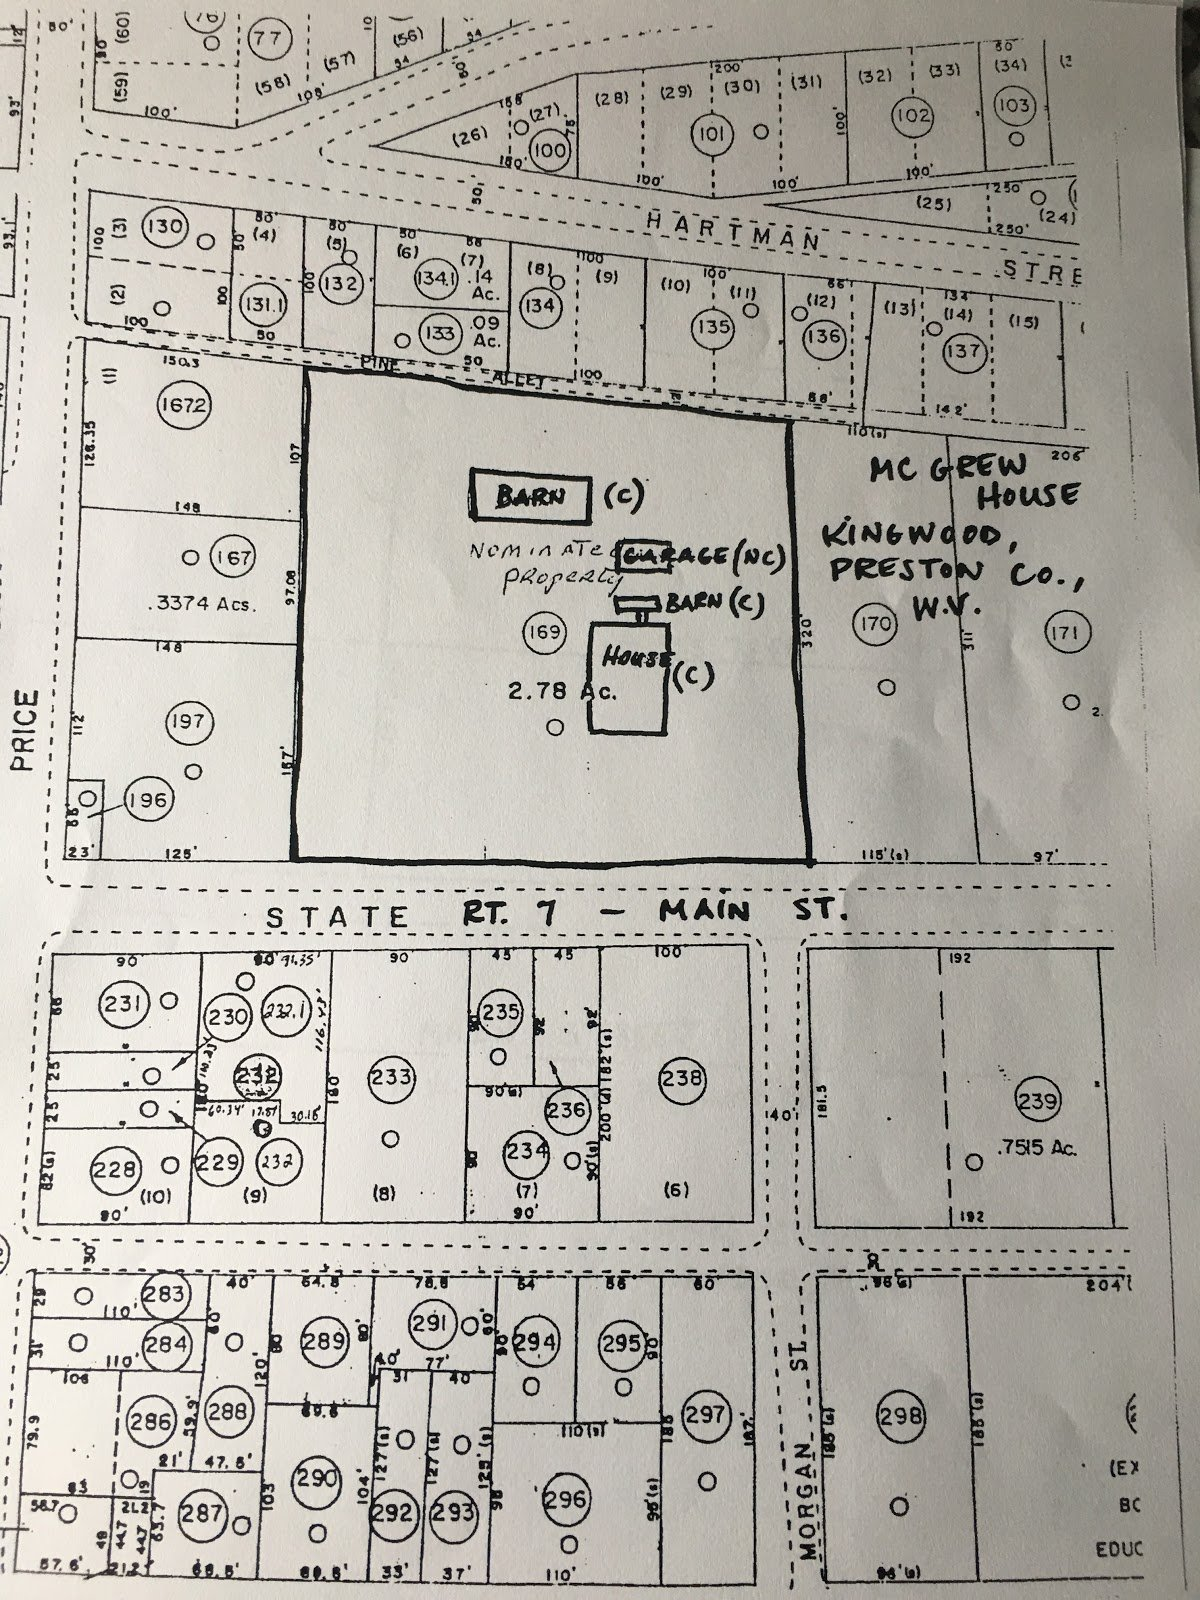 McGrew House blueprints